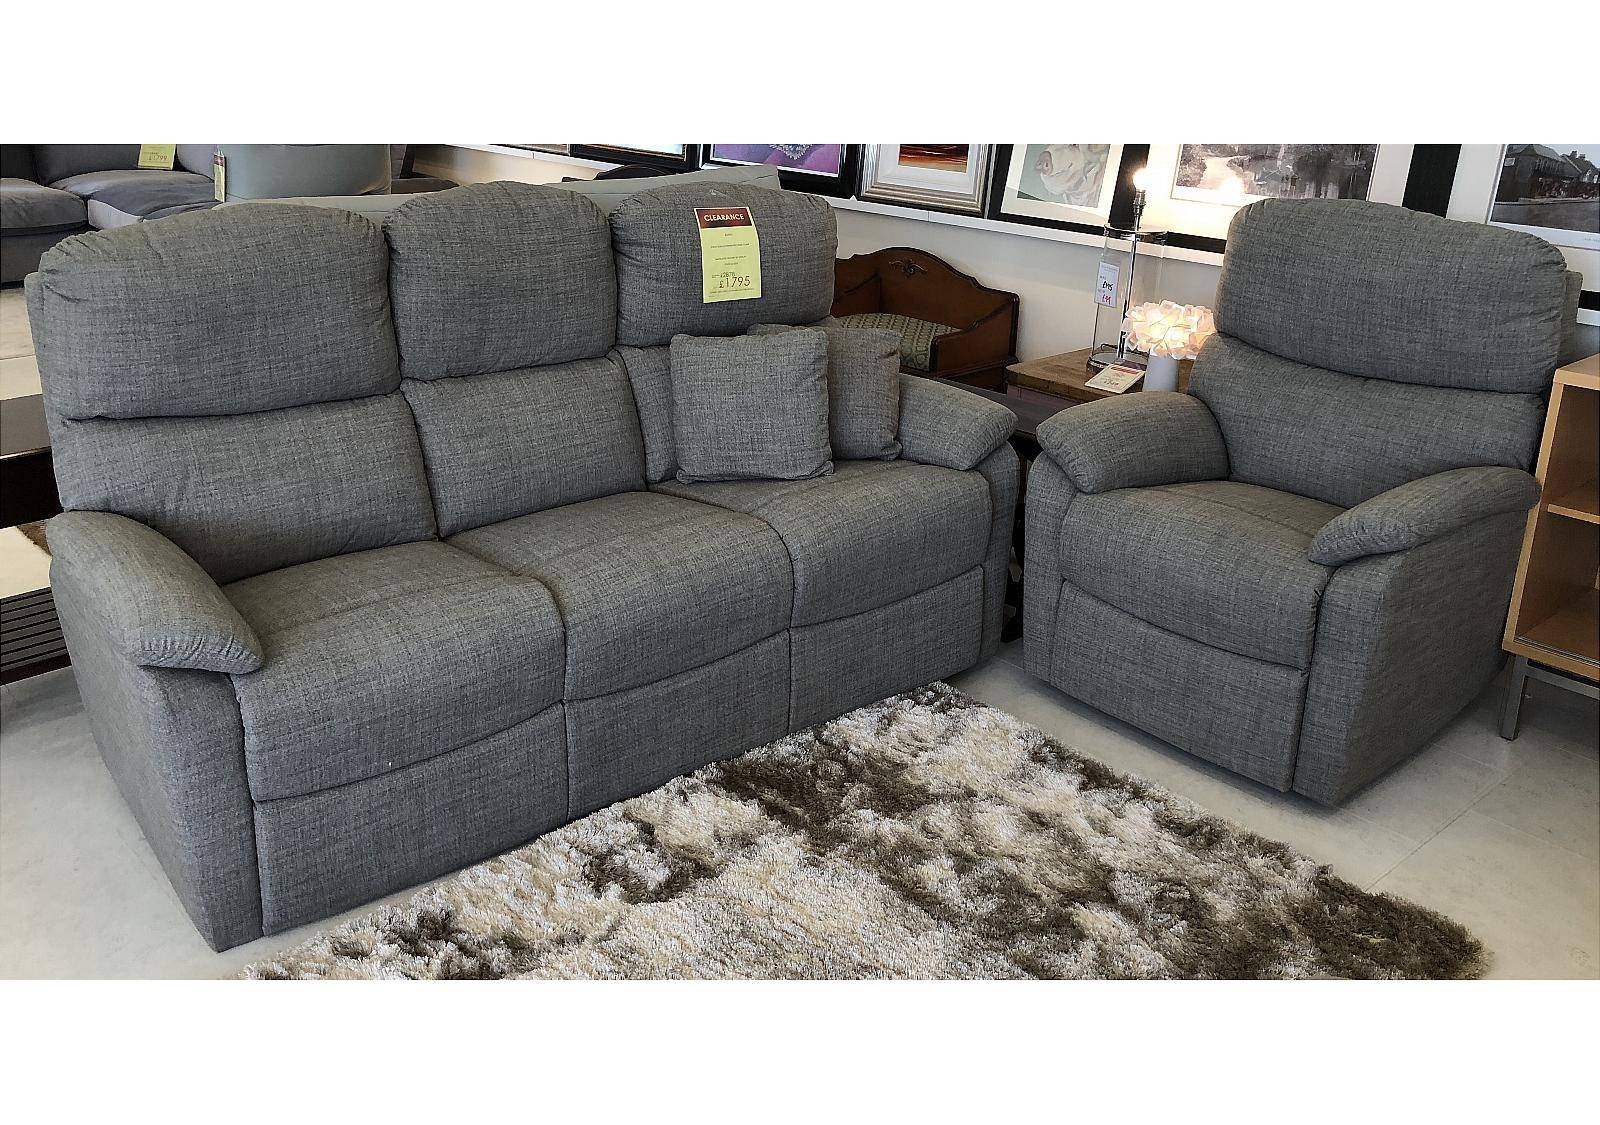 Vale Furnishers Aspen Three Seat Sofa and Power Recliner Chair